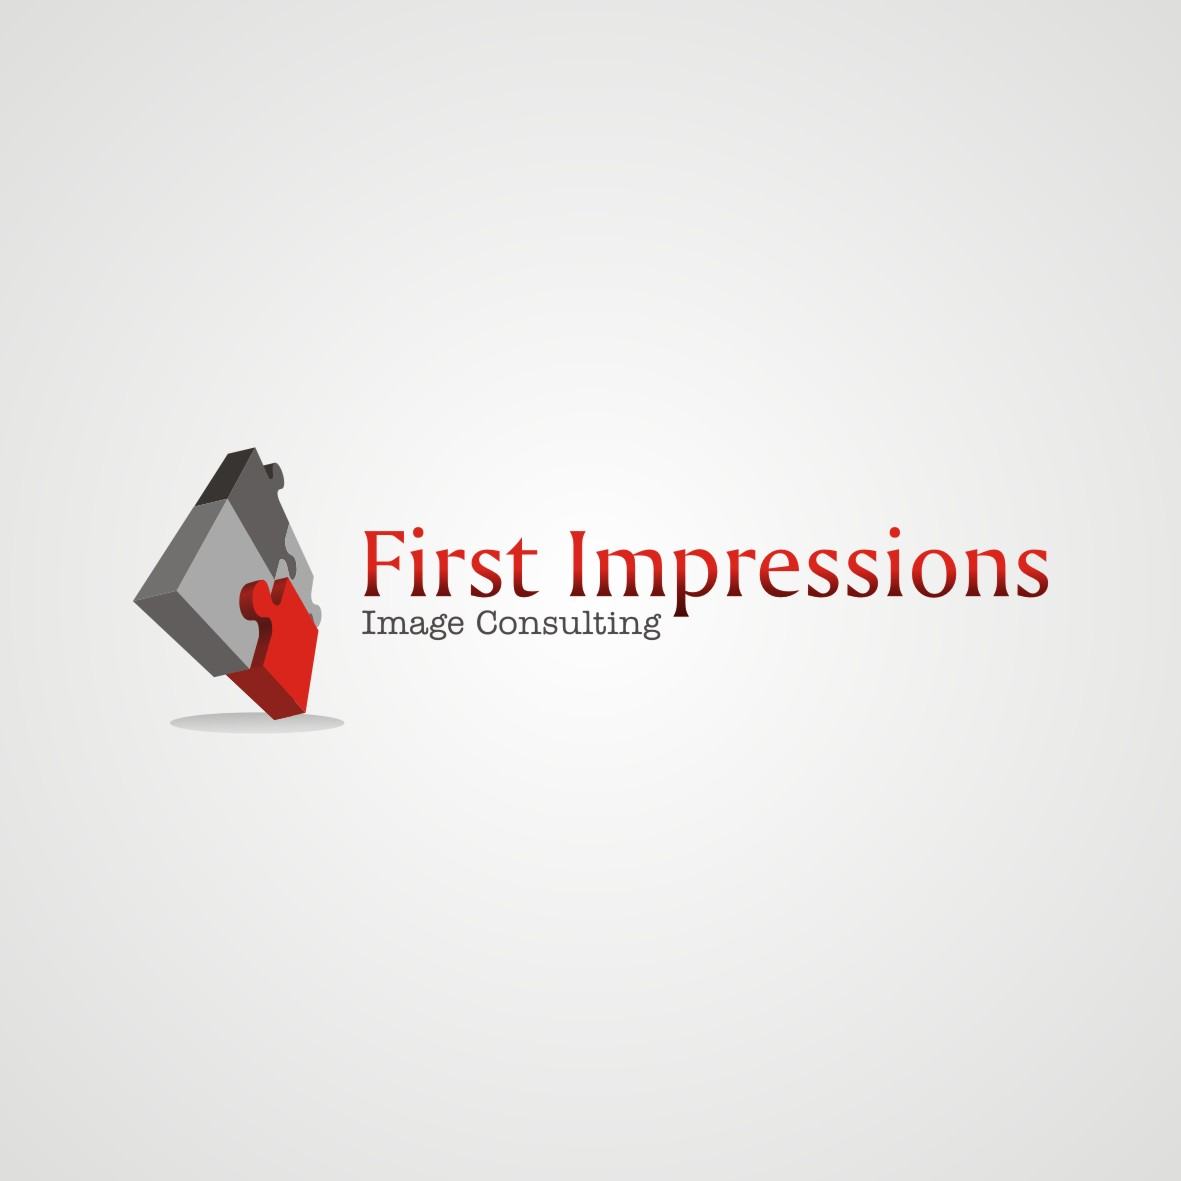 Logo Design by arteo_design - Entry No. 38 in the Logo Design Contest First Impressions Image Consulting Logo Design.